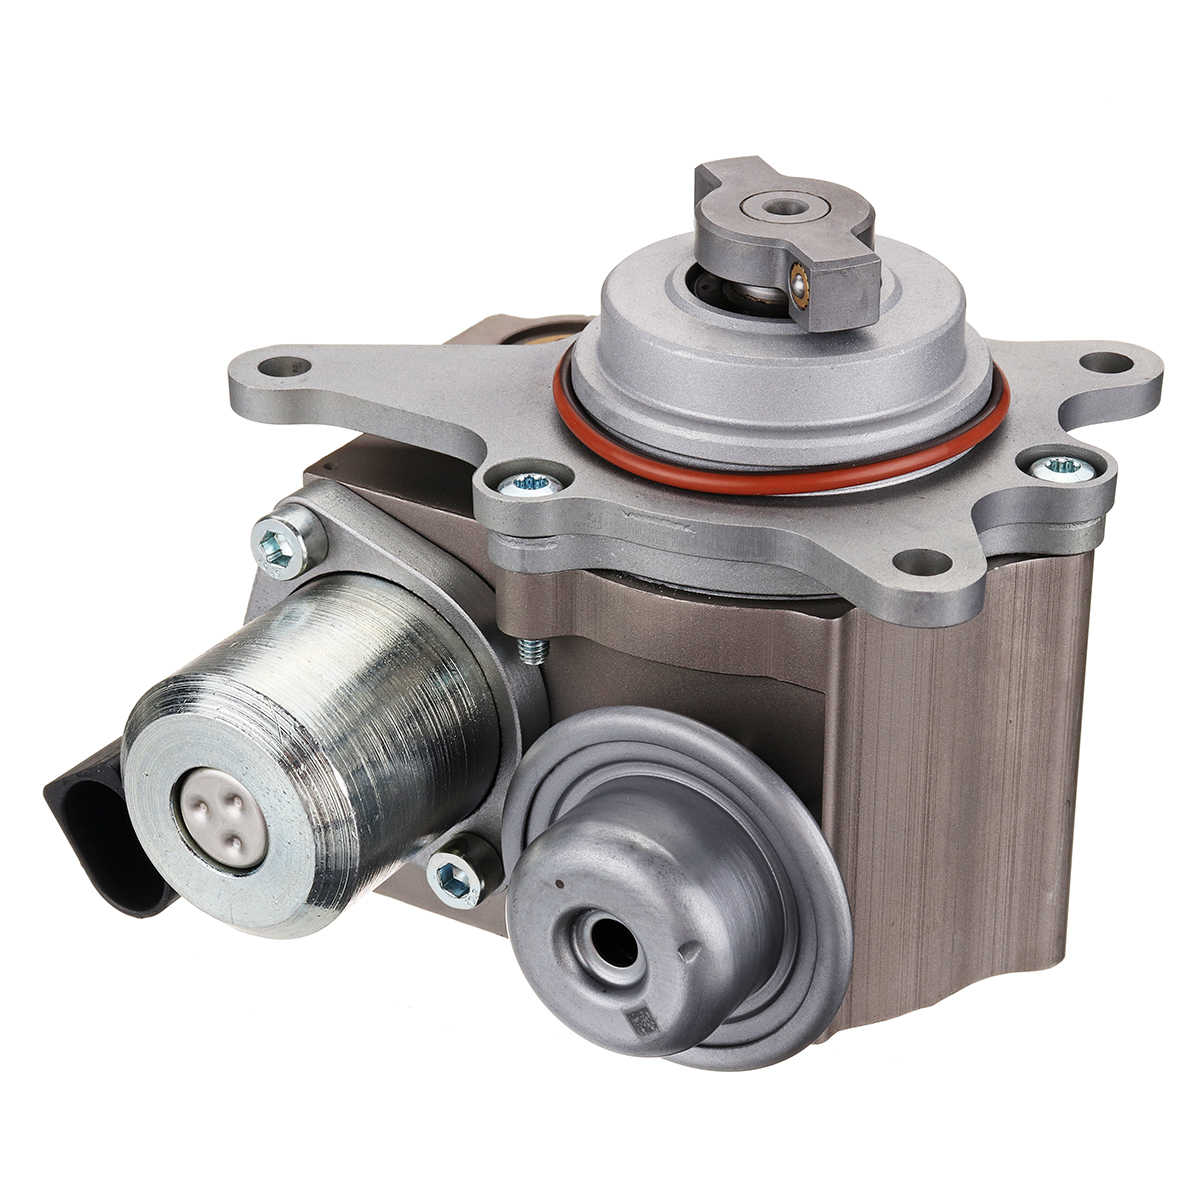 13517573436 High Pressure Fuel Pump For BMW Mini-Cooper S Turbocharged R55  R56 R57 R58 R59 12 6x9 4x10cm -40-85Degree 6V-16V